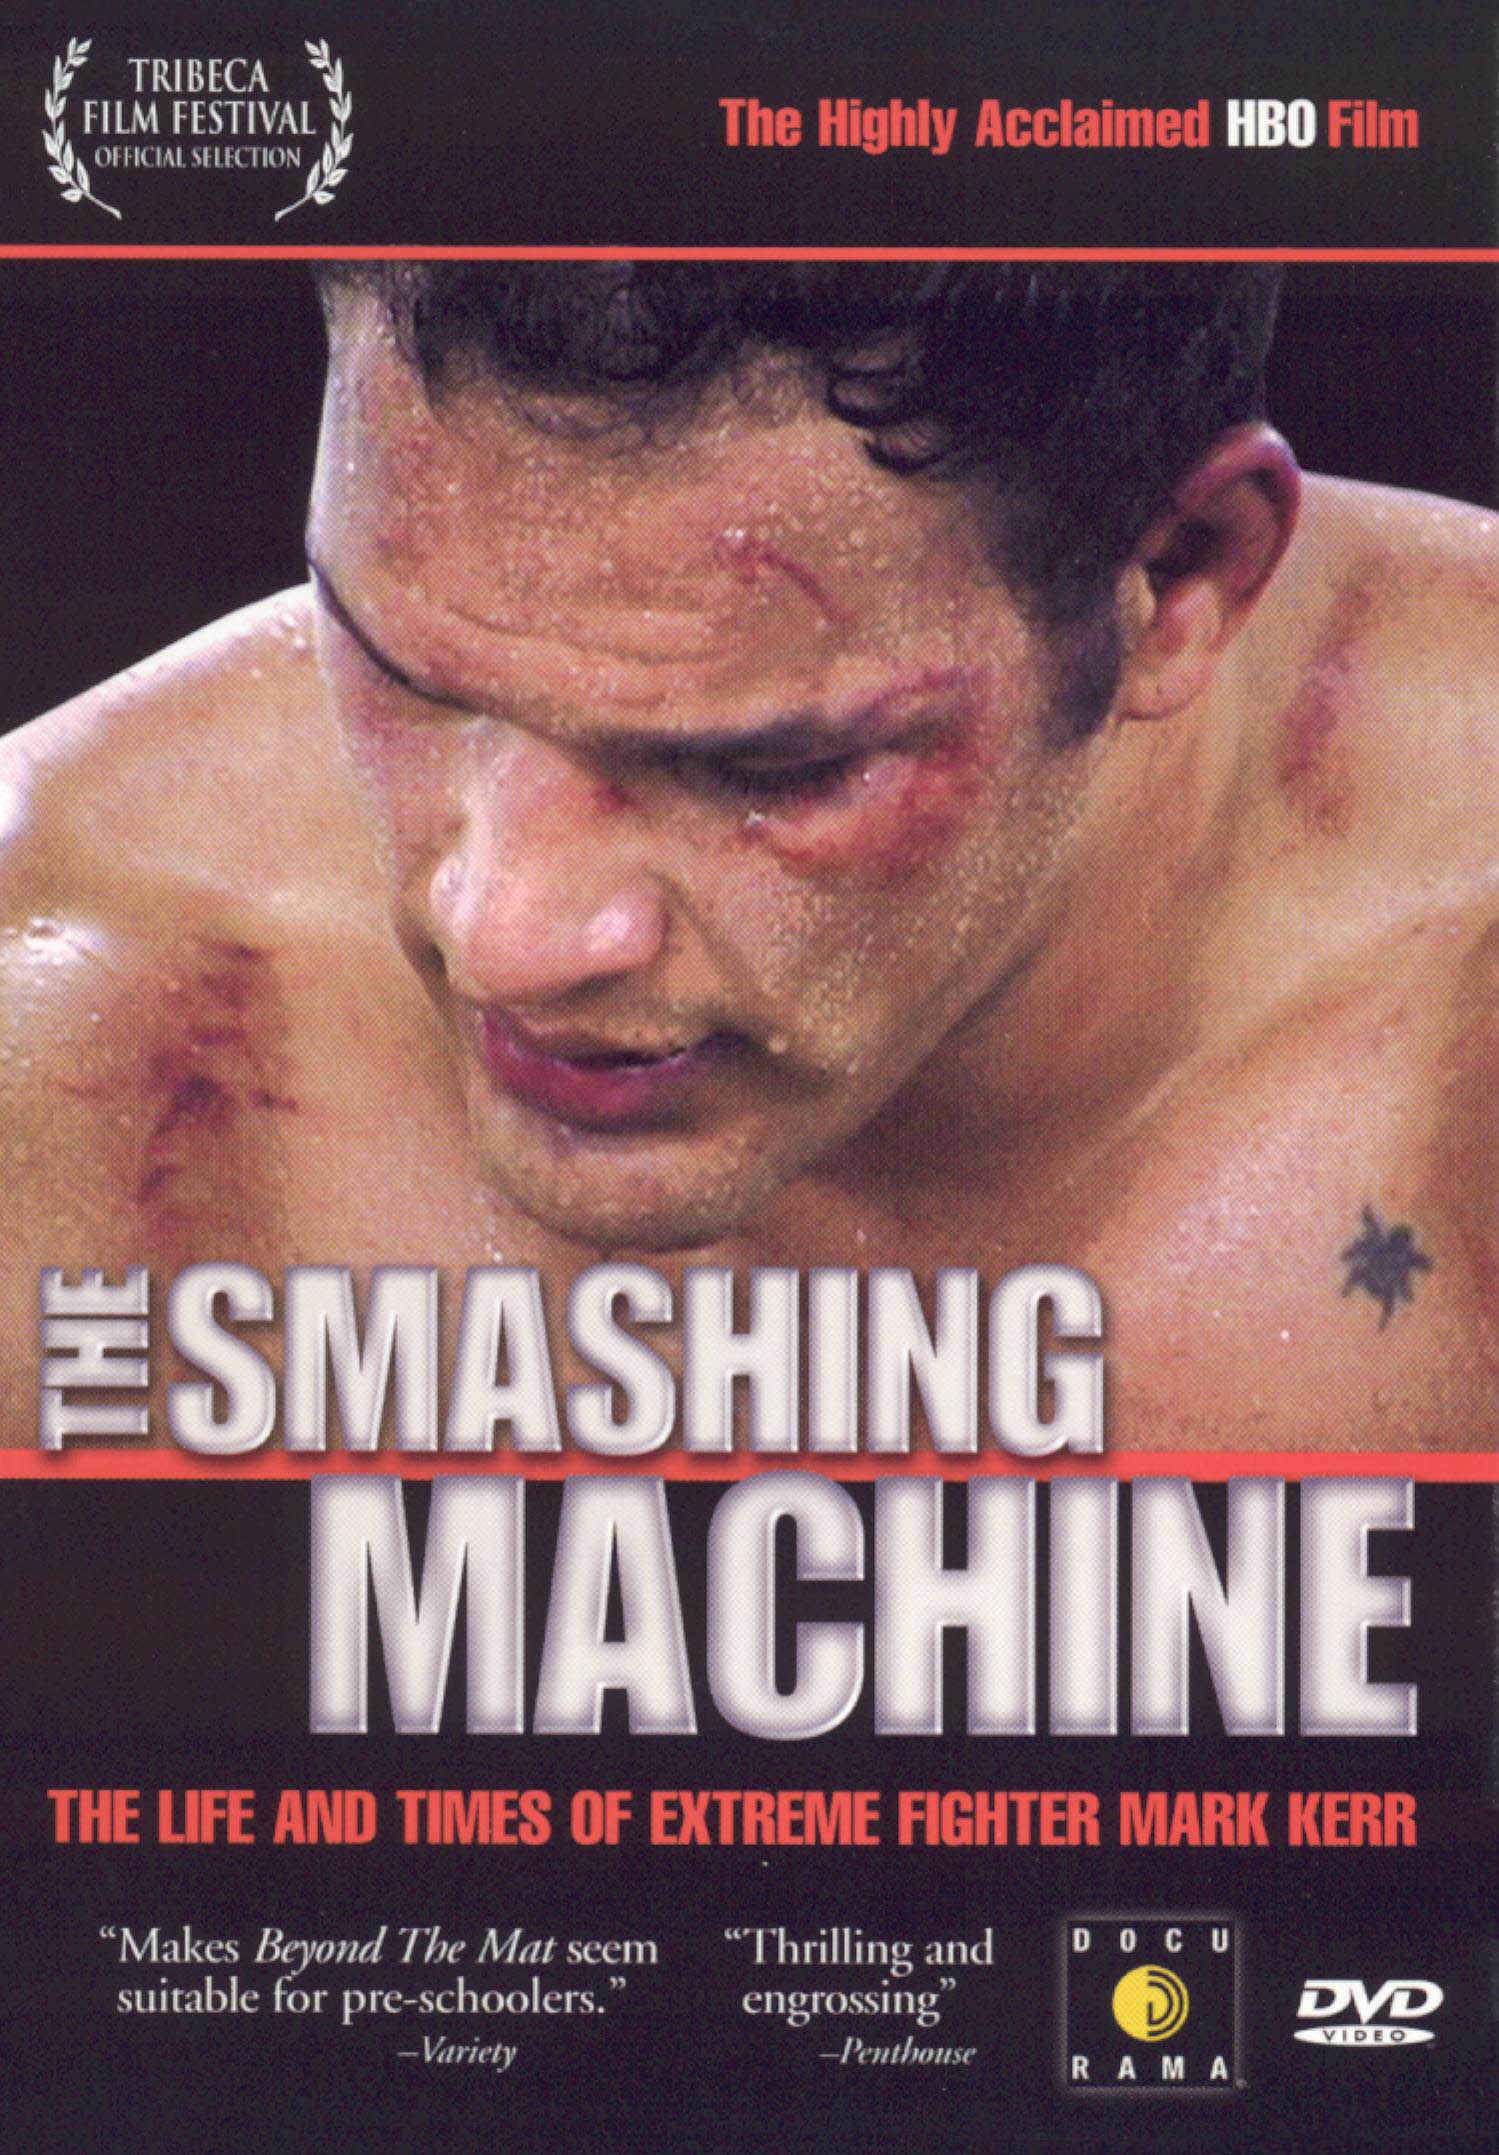 The Smashing Machine: The Life and Times of Mark Kerr